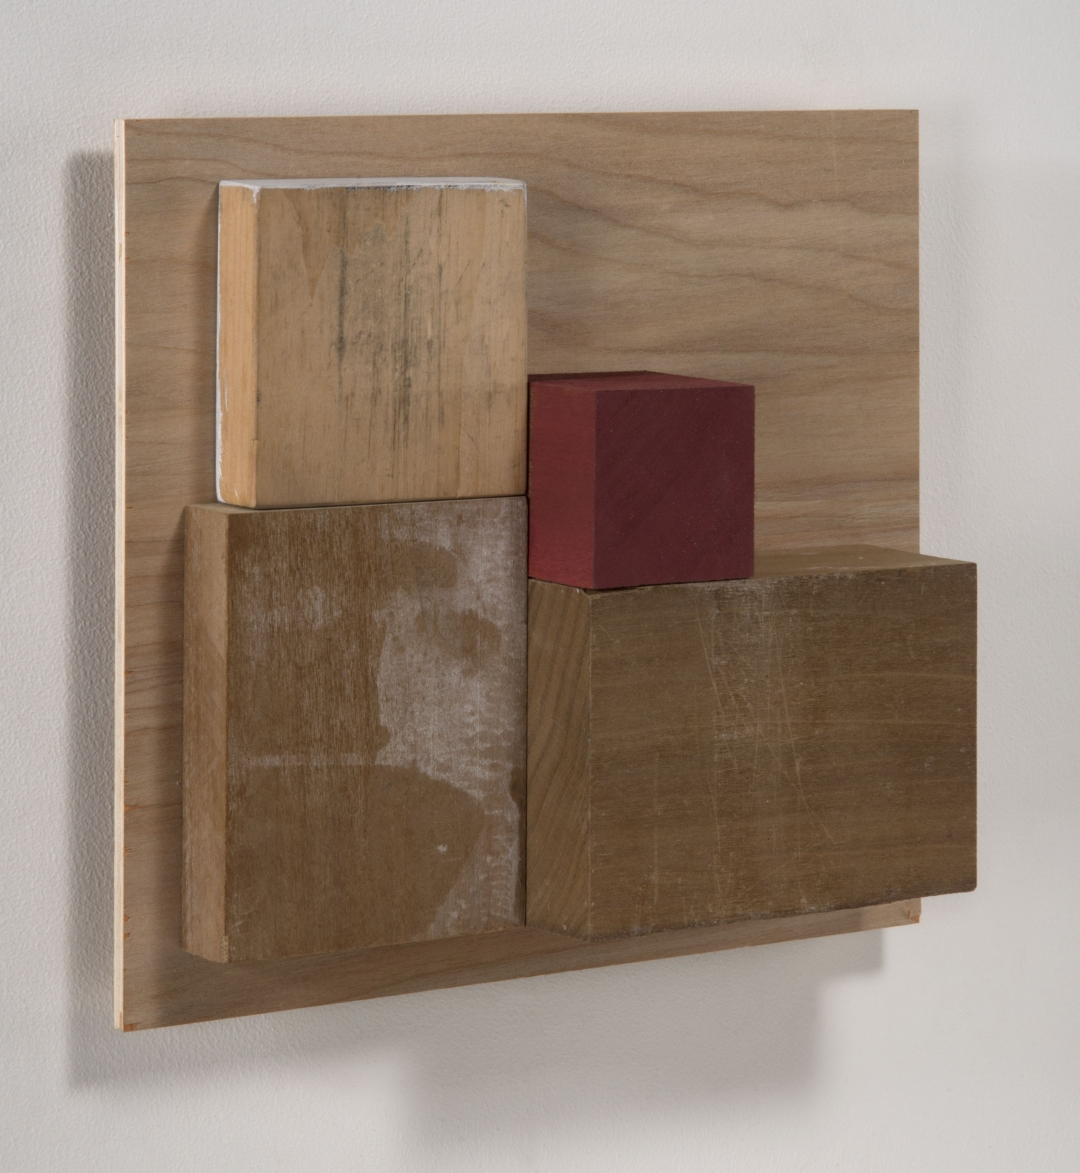 Richard Fleischner, <i>Untitled Construction</i>, 2019, wood and gouache, 8 3/8 x 9 1/8 x 2 1/2 inches (21.3 x 23.2 x 6.4 cm)